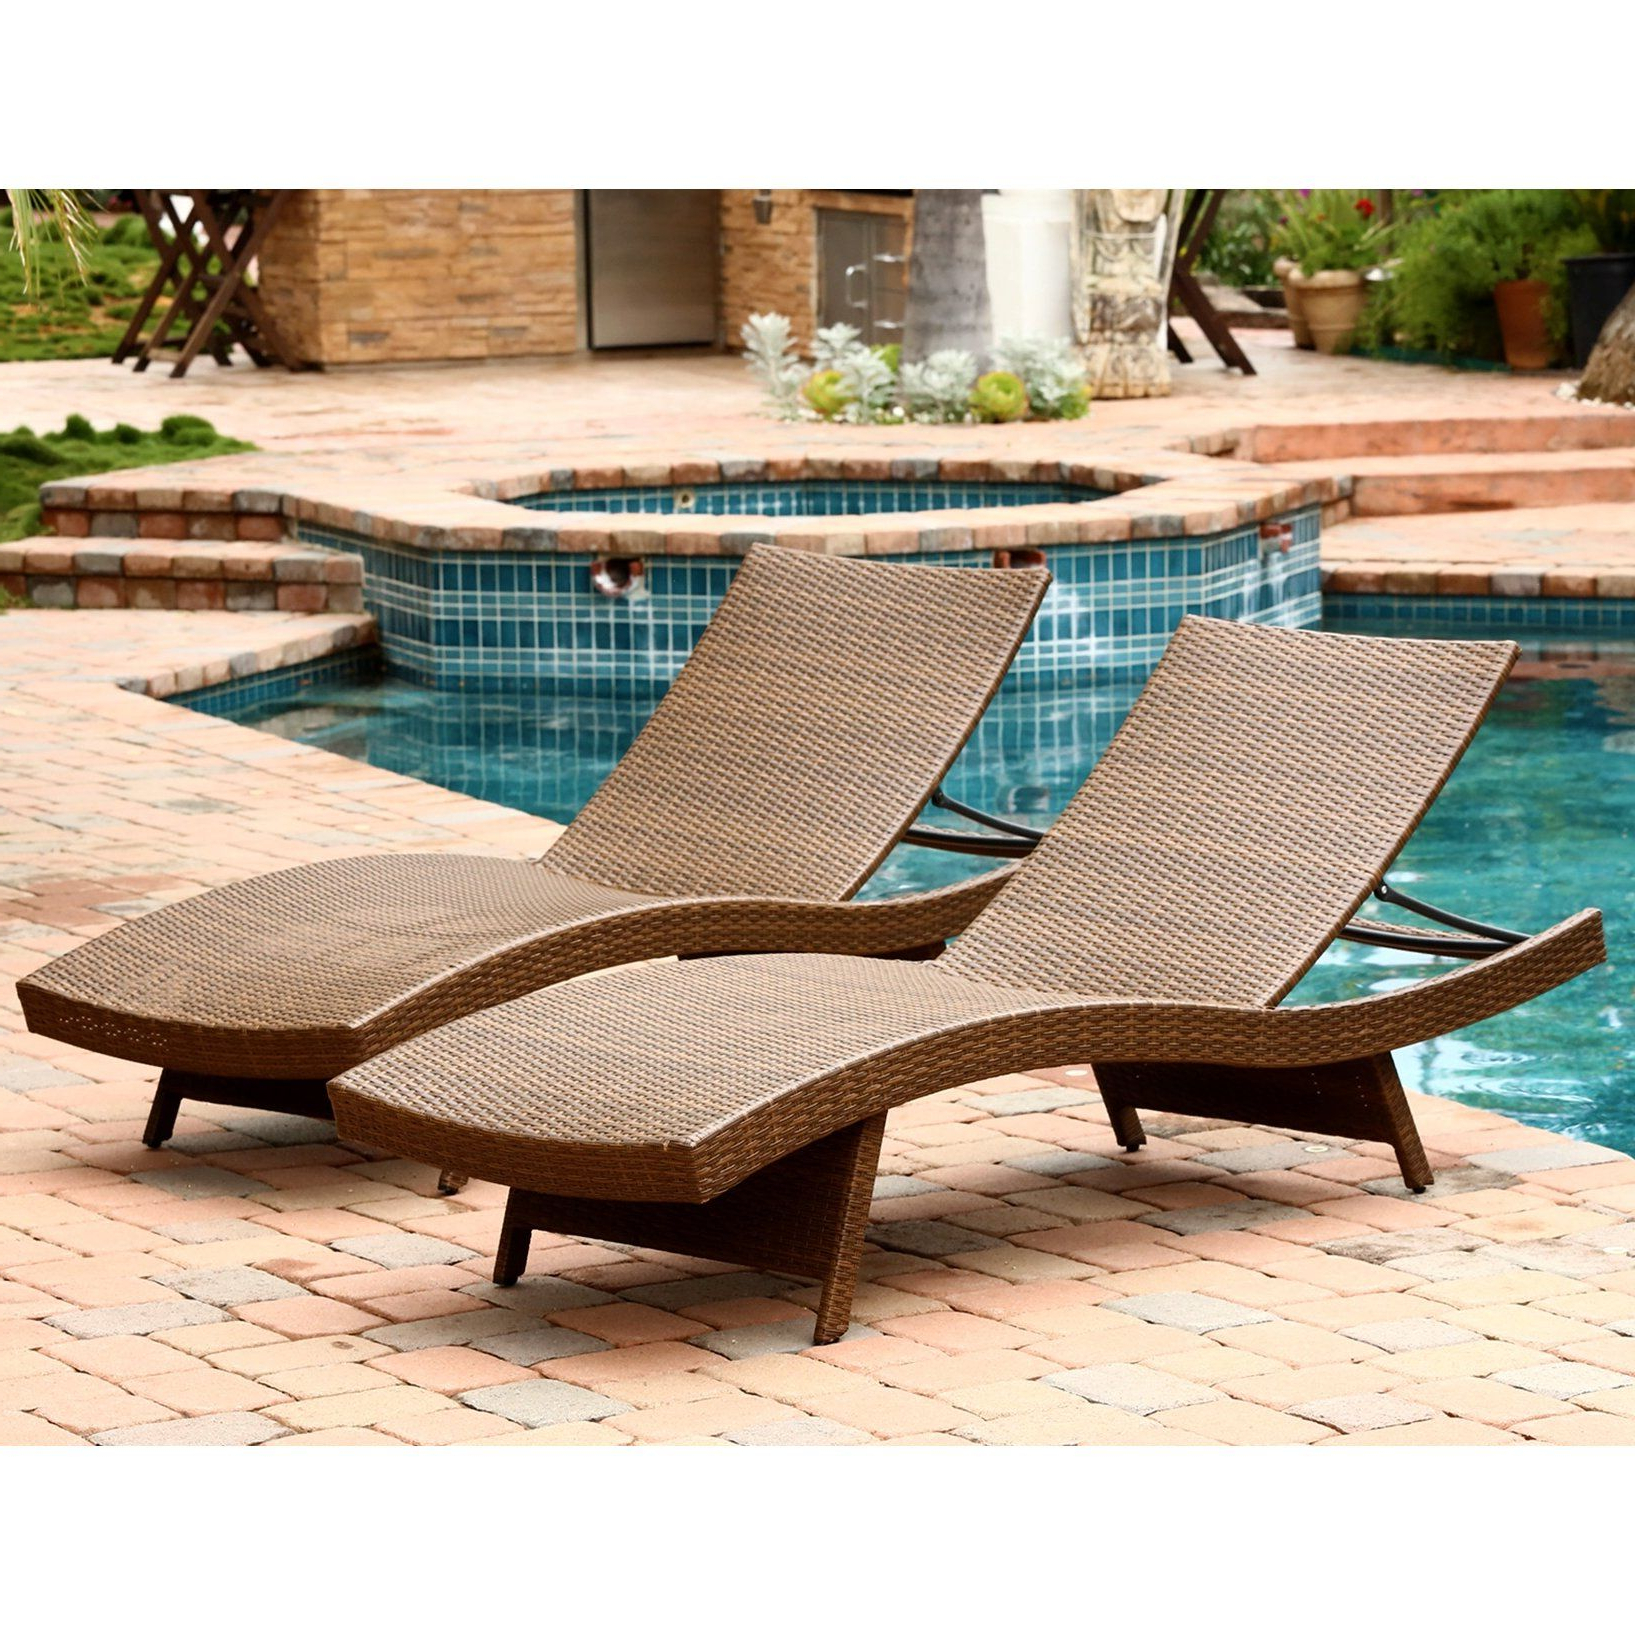 Brayden Studio® Quinn Patio Lounger (Gallery 17 of 20)